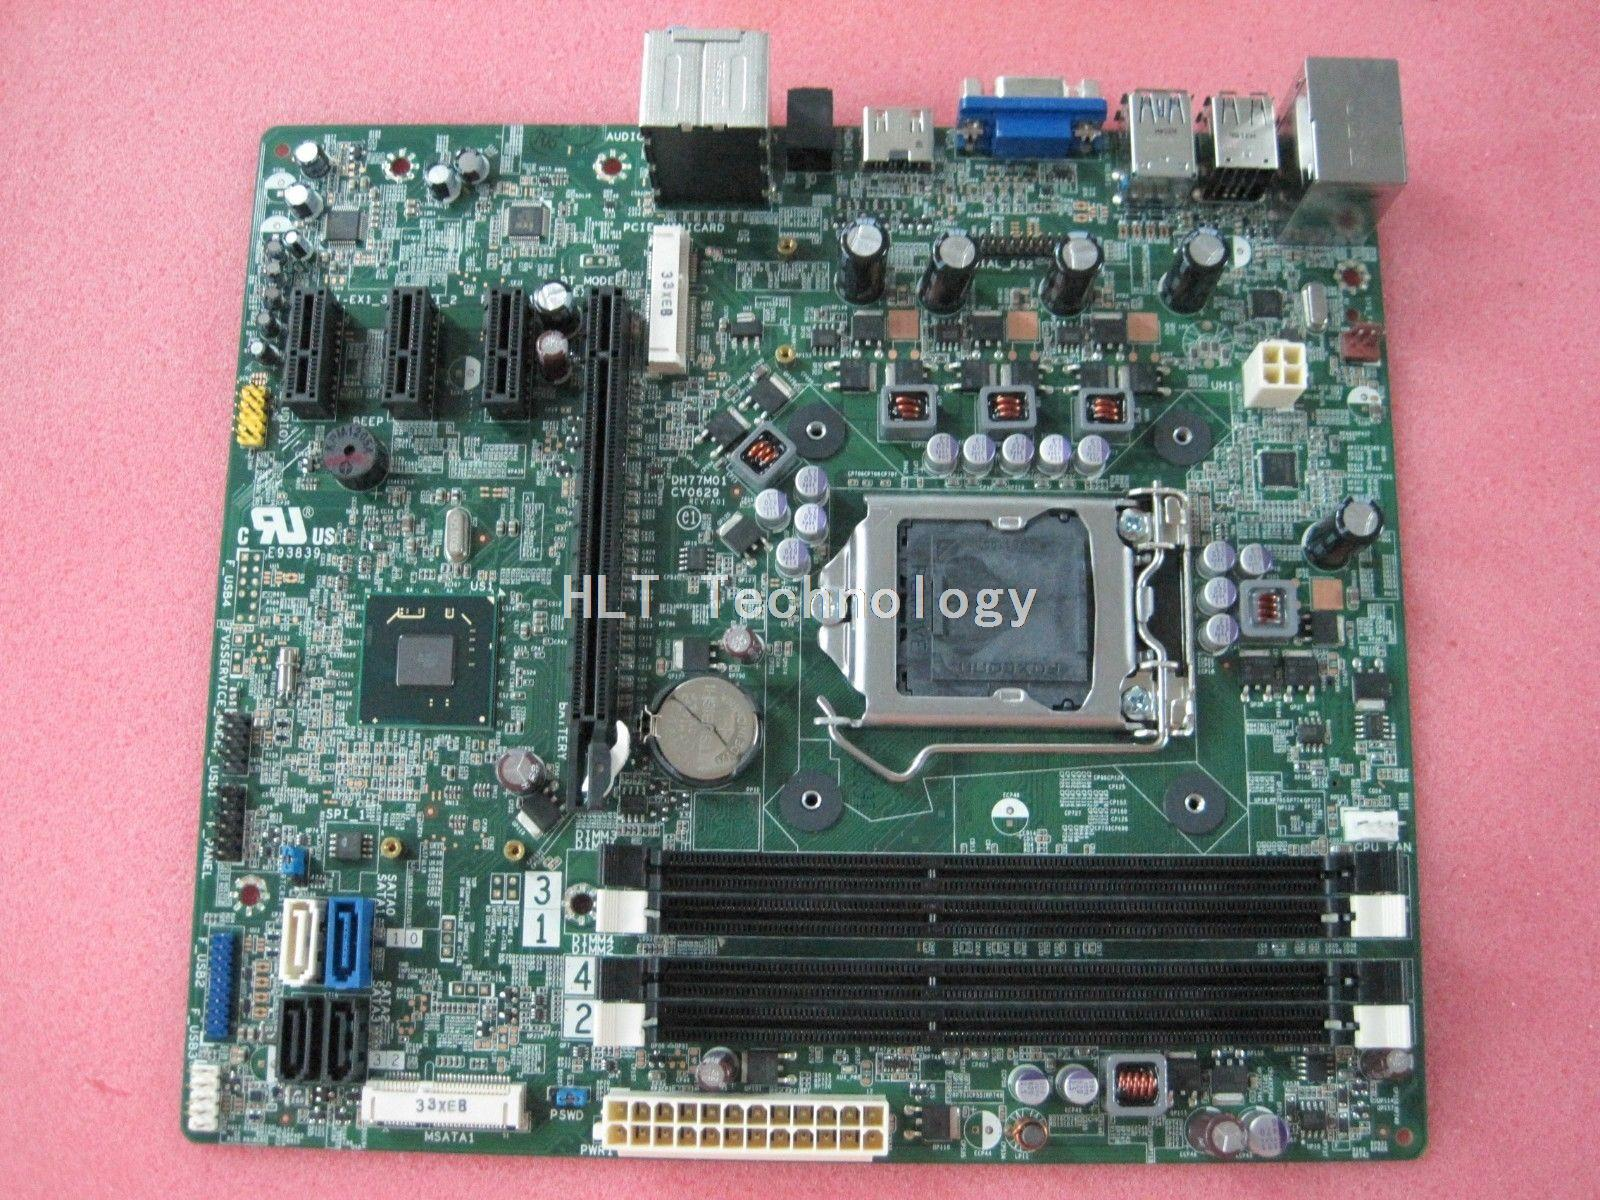 dell xps 8500 motherboard diagram viper 5701 wiring model bing images